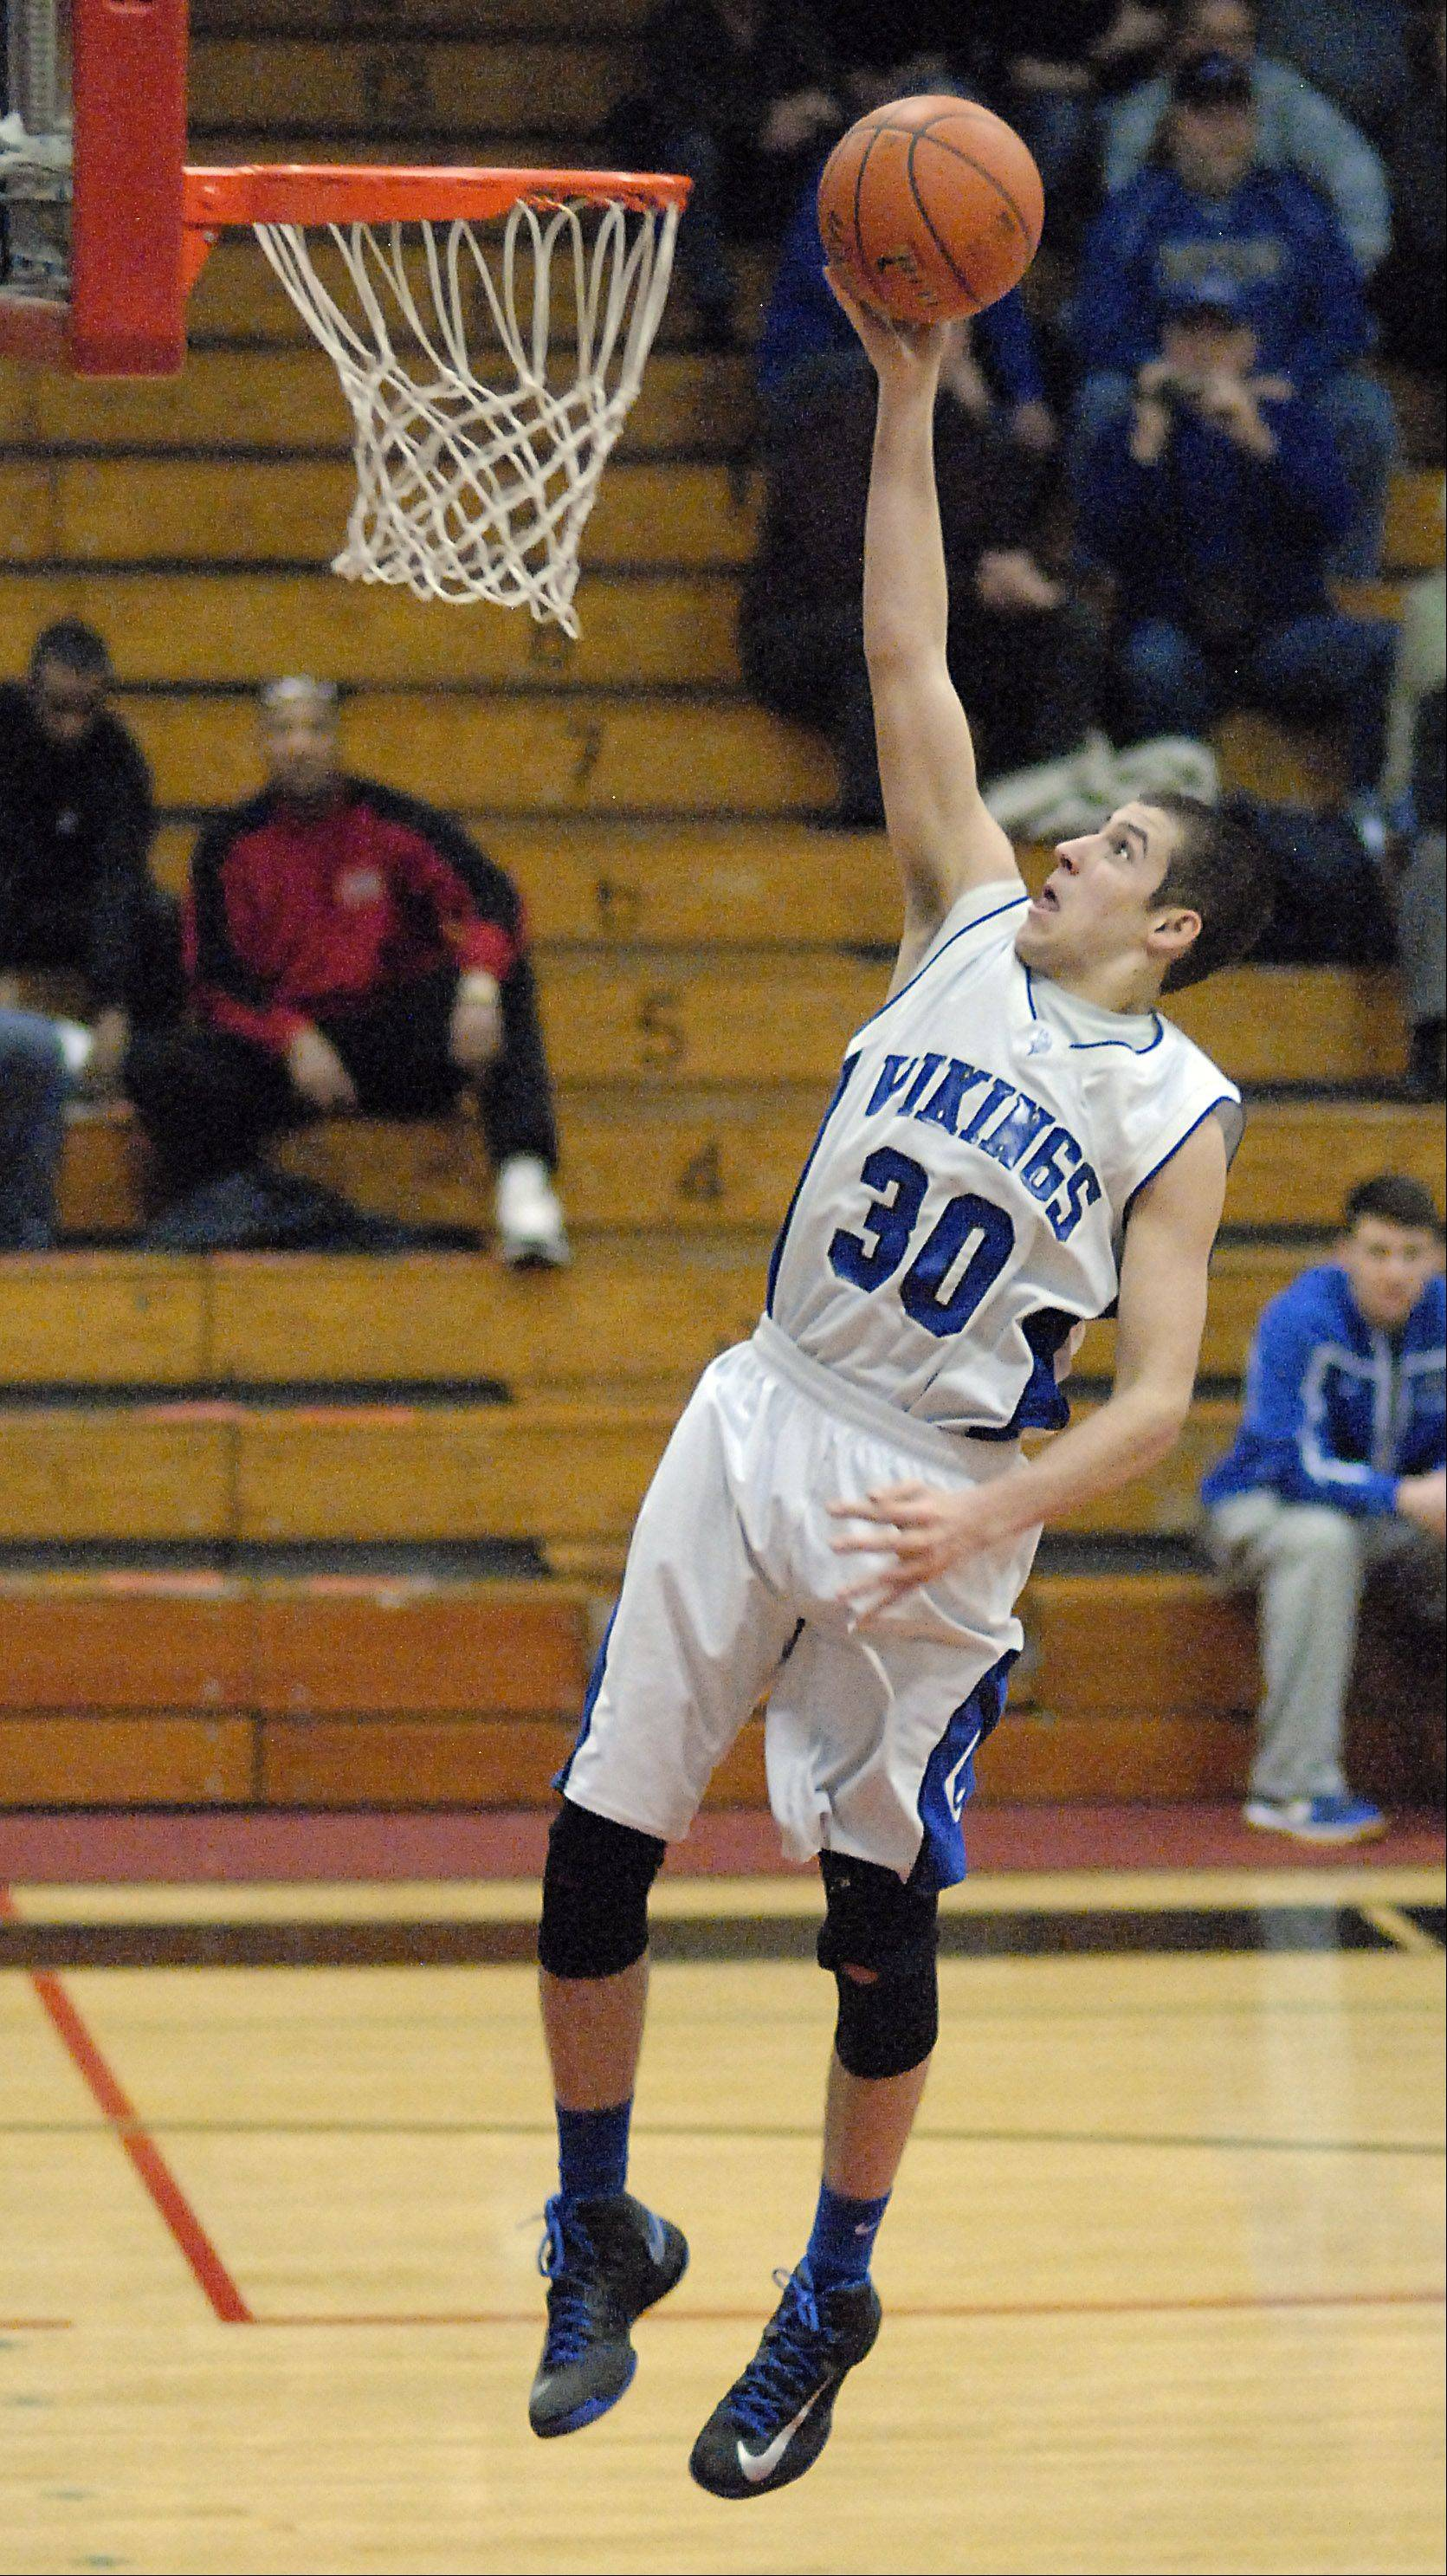 Geneva's Chris Parrilli sinks a shot Friday.